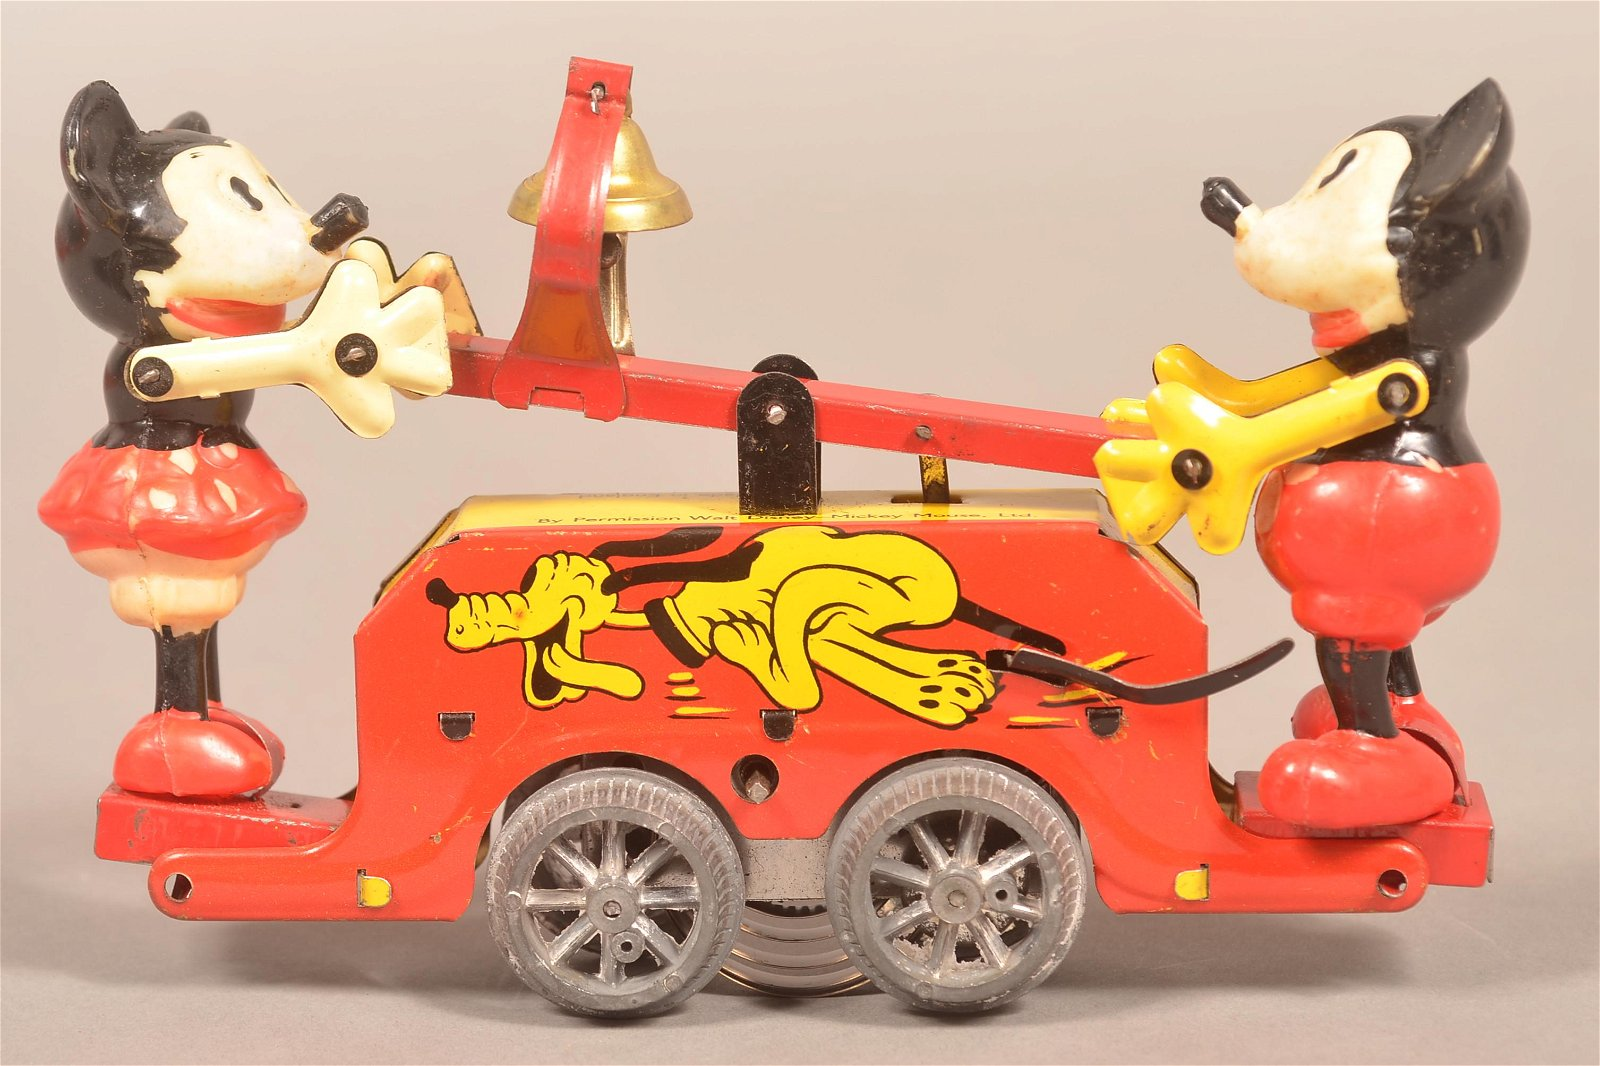 Wells Wind-Up Mickey & Minnie Mouse Handcar Toy.